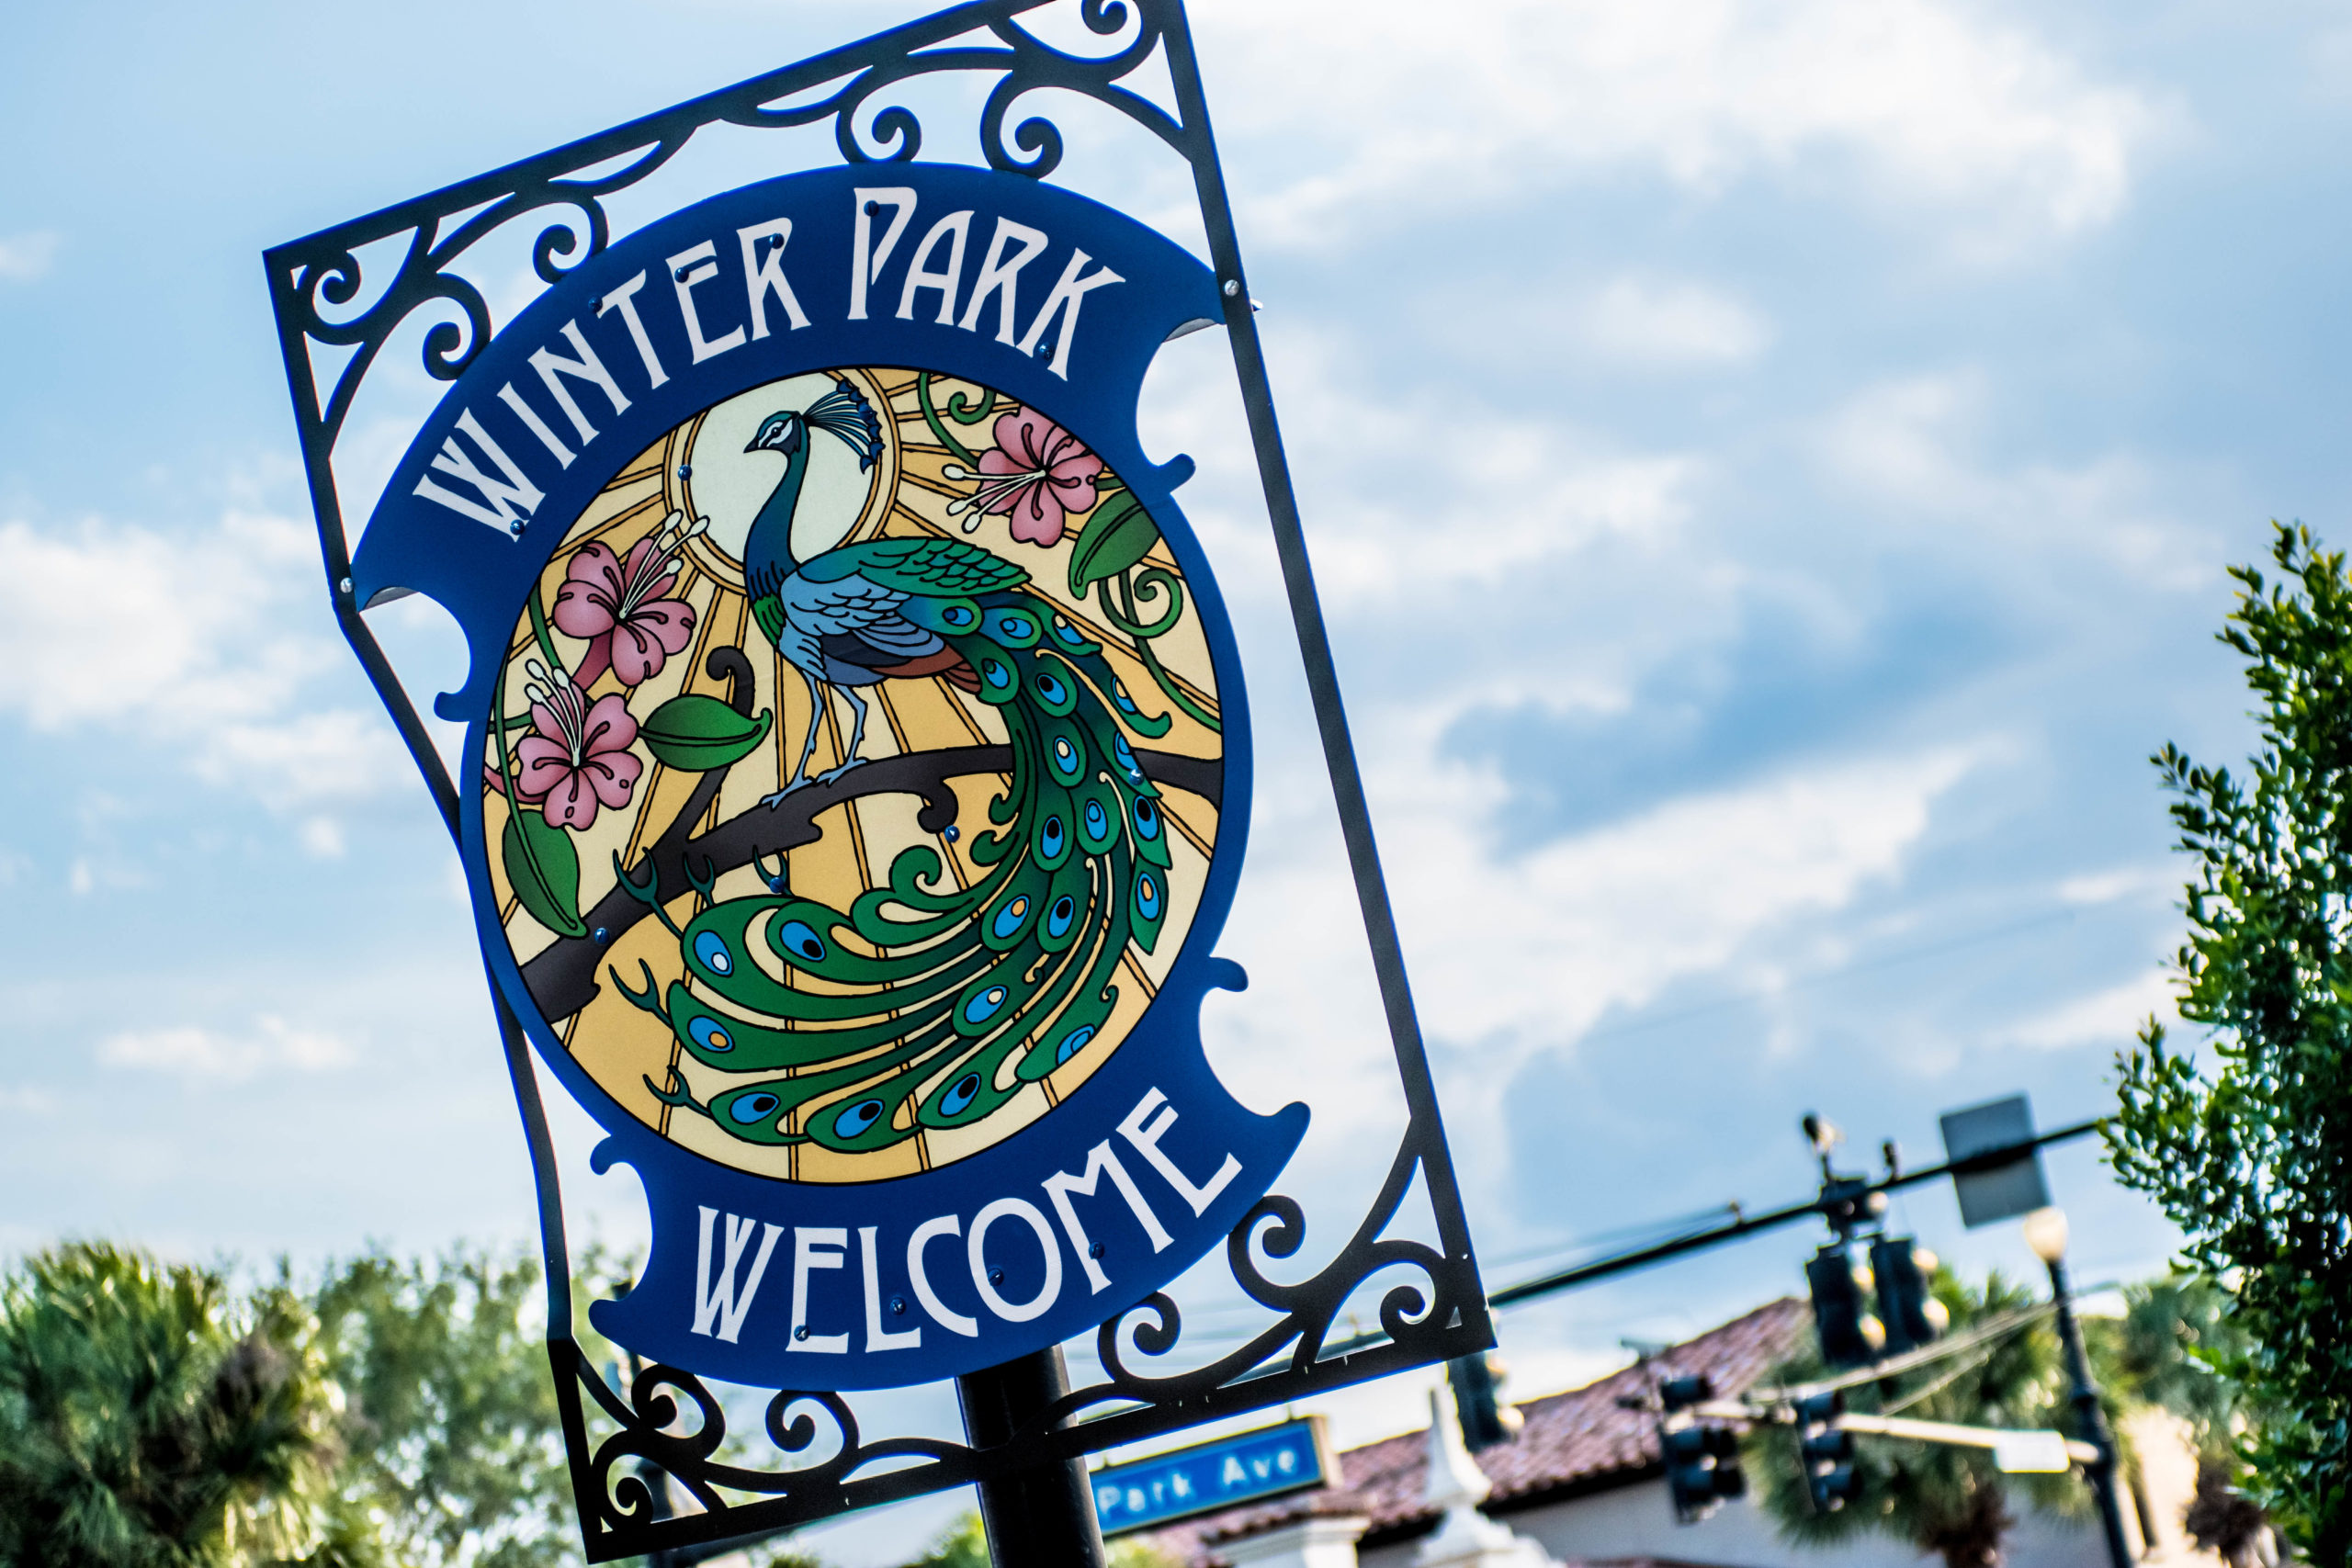 Winter Park Welcome sign.